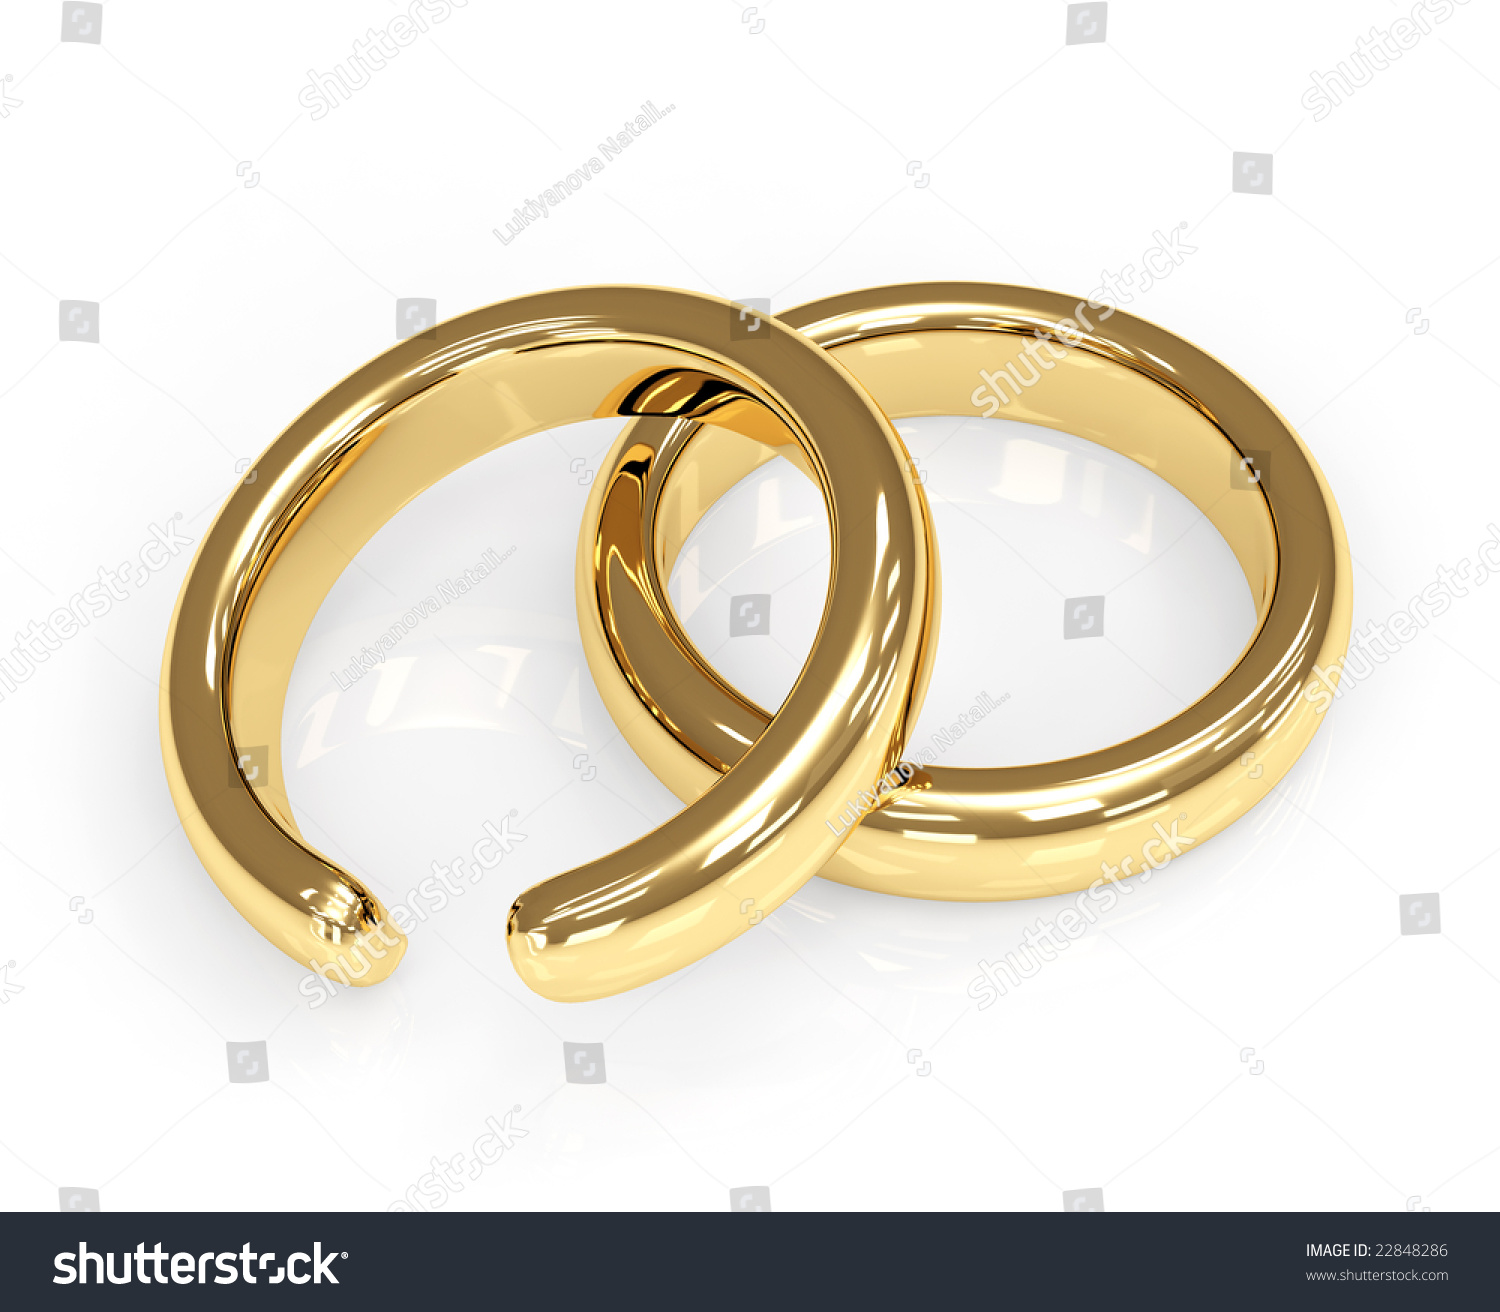 royalty the free photo rings image broken stock wedding picture and